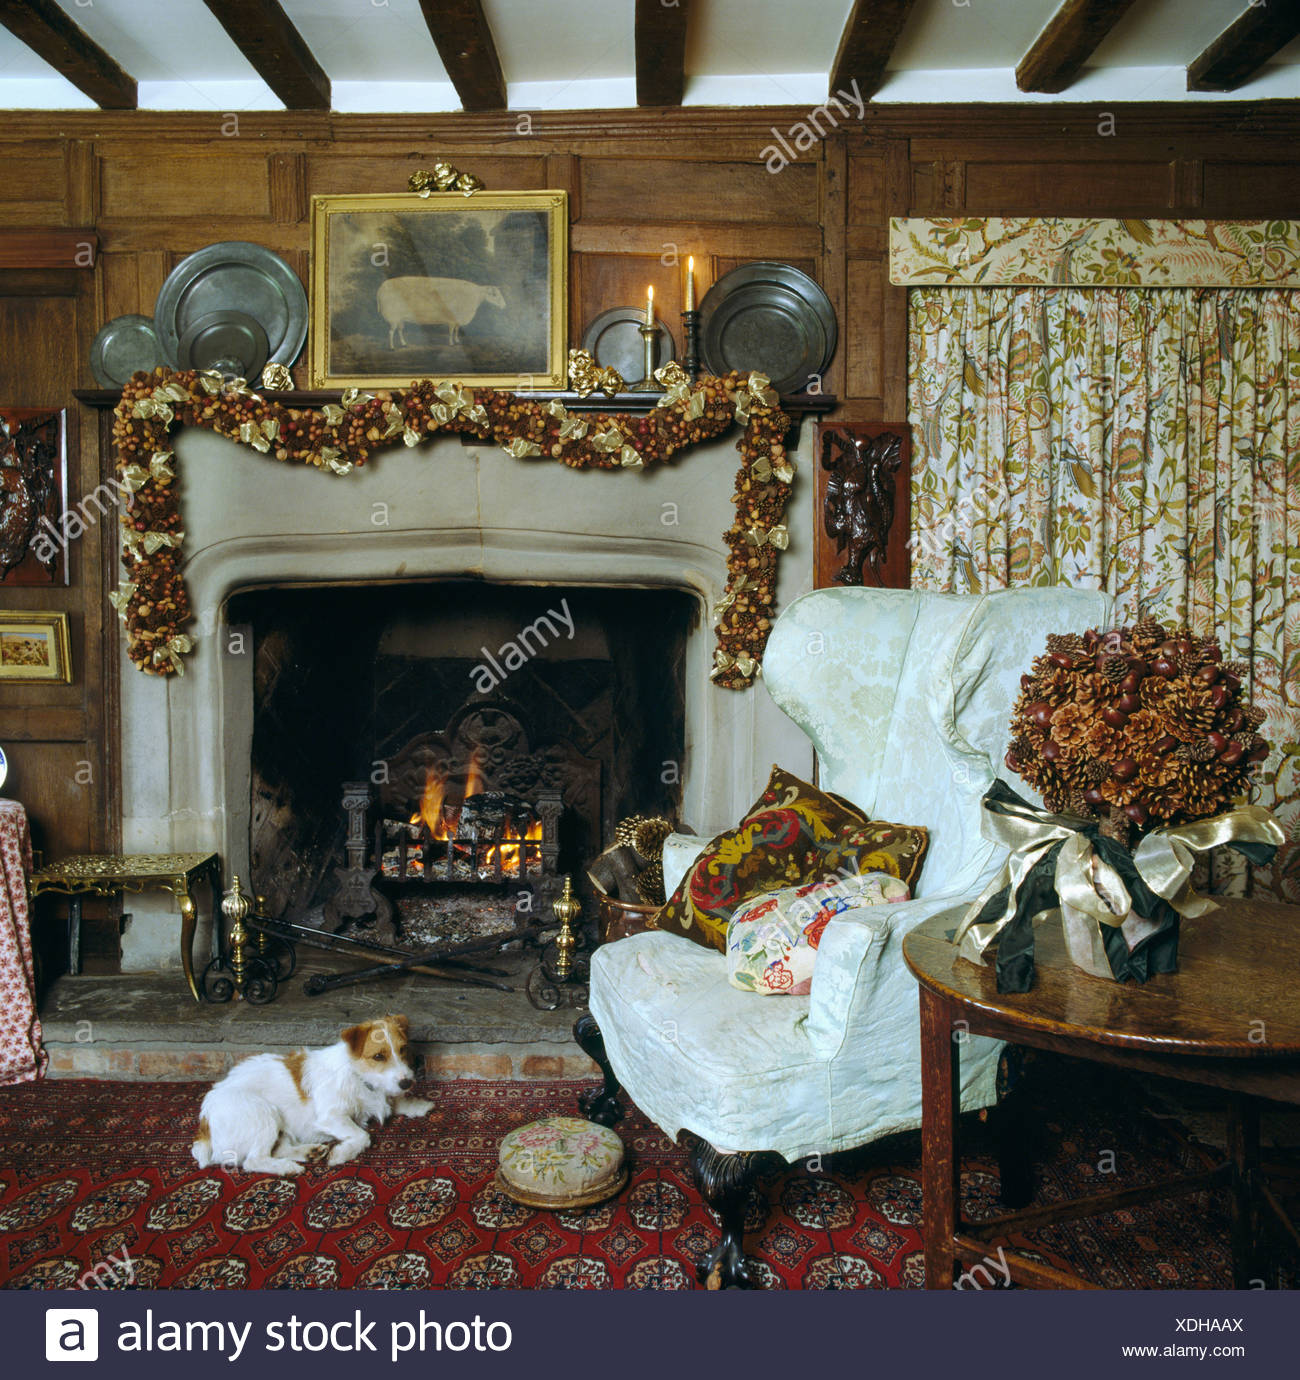 Awe Inspiring Terrier Dog Lying On Rug In Front Of The Fire In Country Gmtry Best Dining Table And Chair Ideas Images Gmtryco